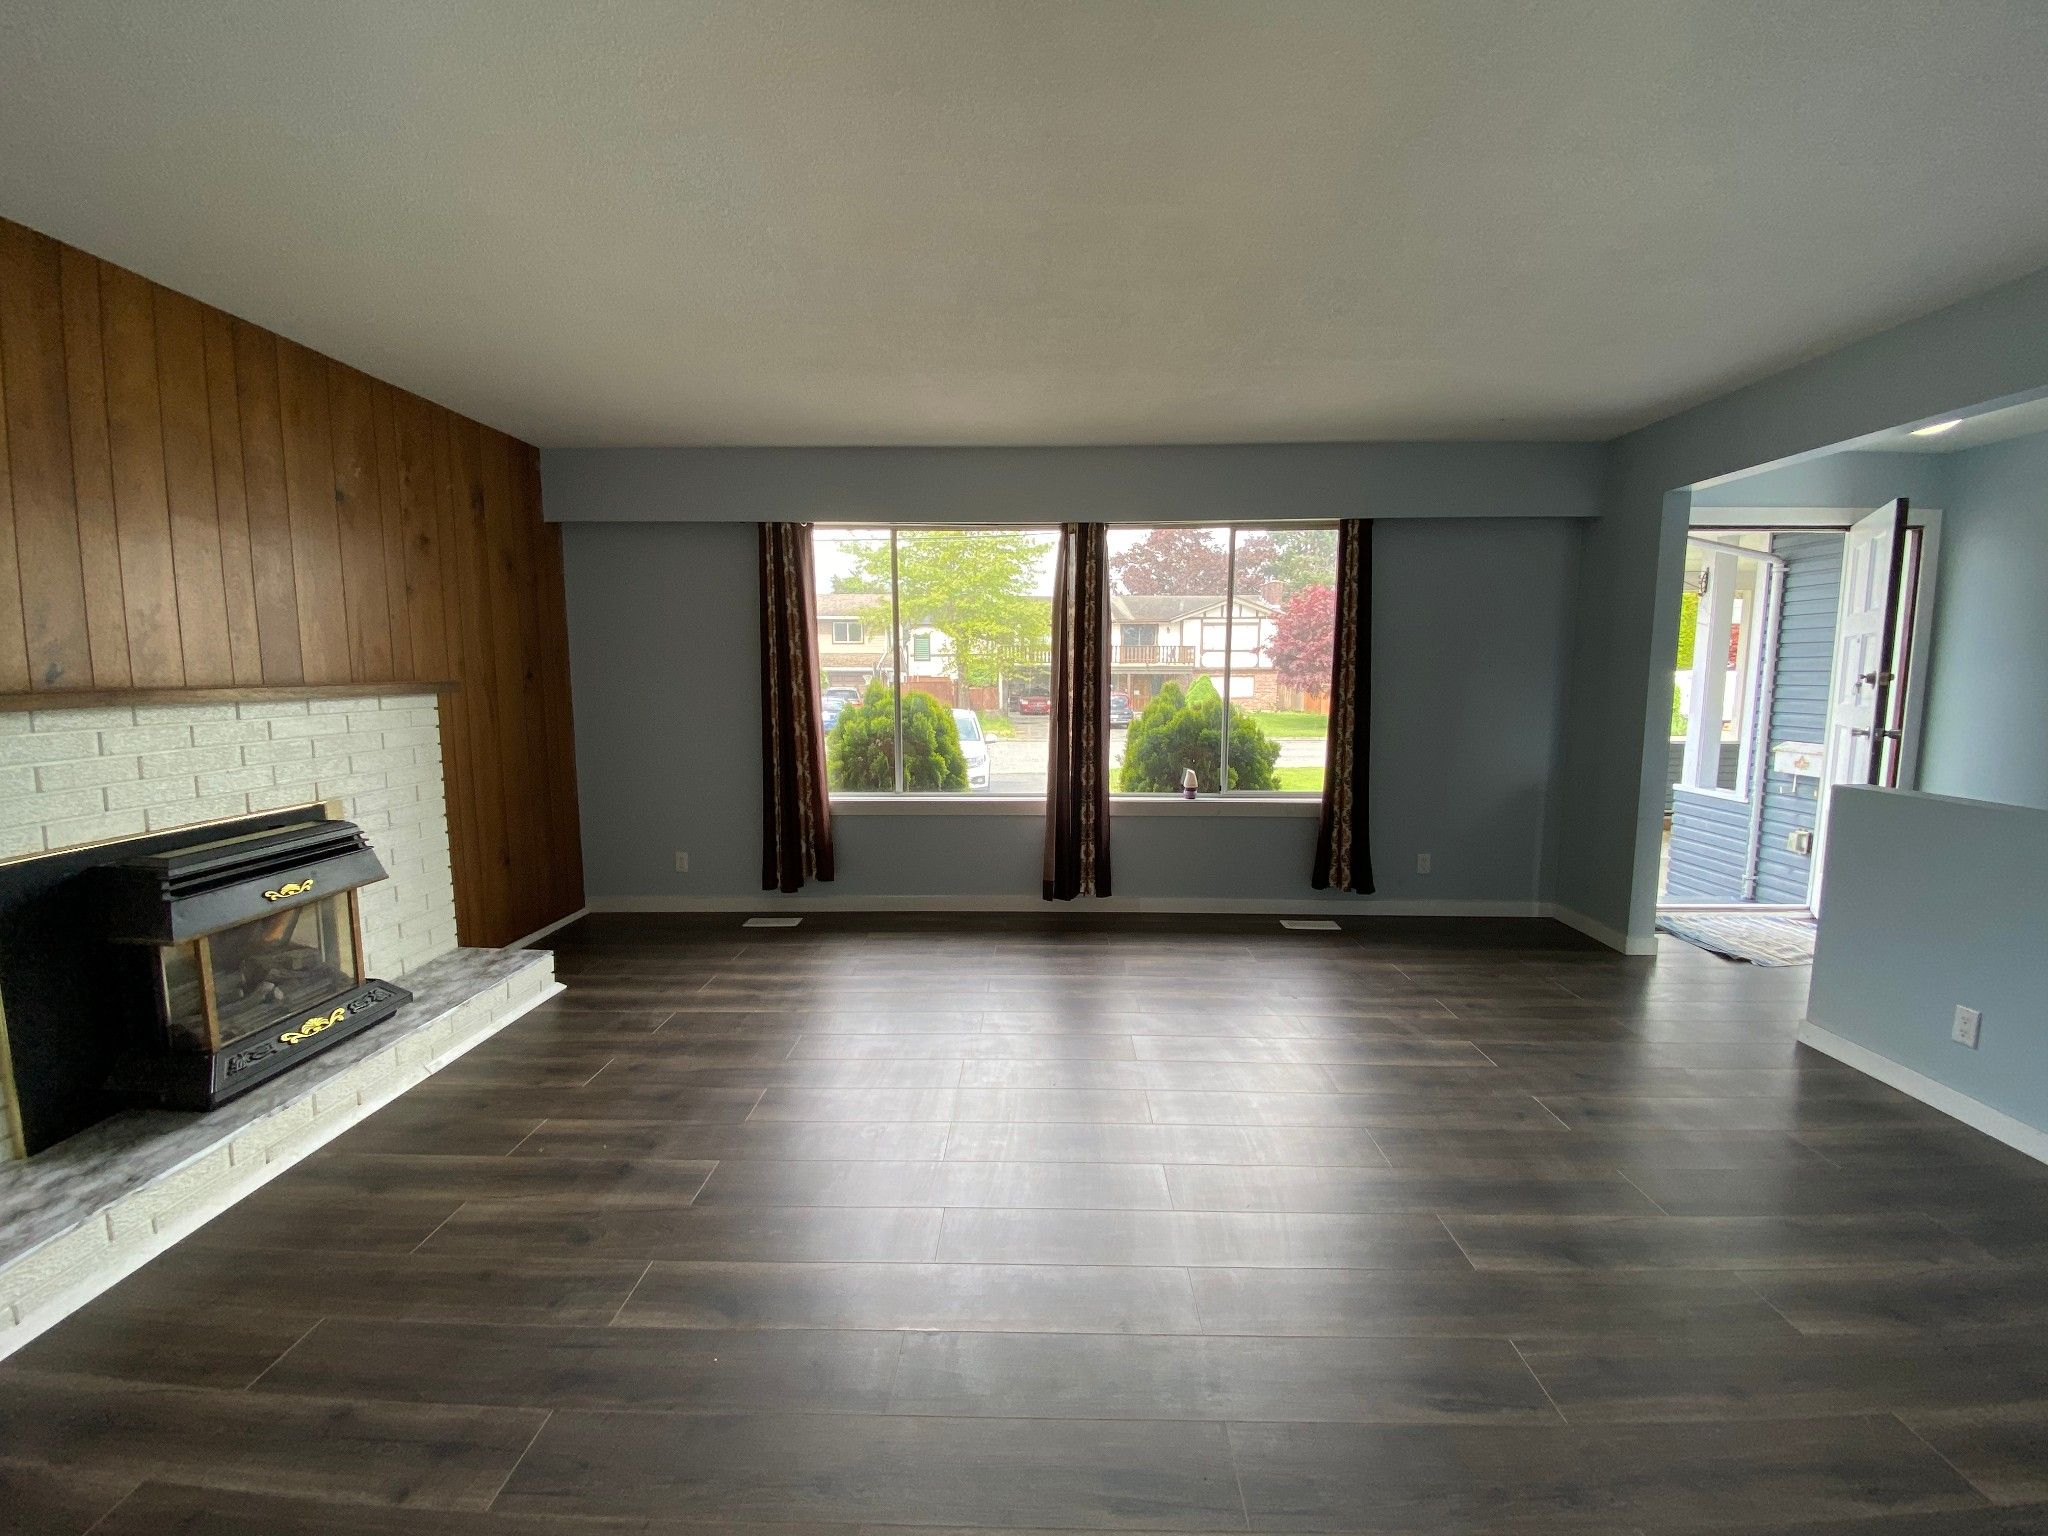 Photo 3: Photos: 2098 Lonsdale Cr. in Abbotsford: Abbotsford West House for rent